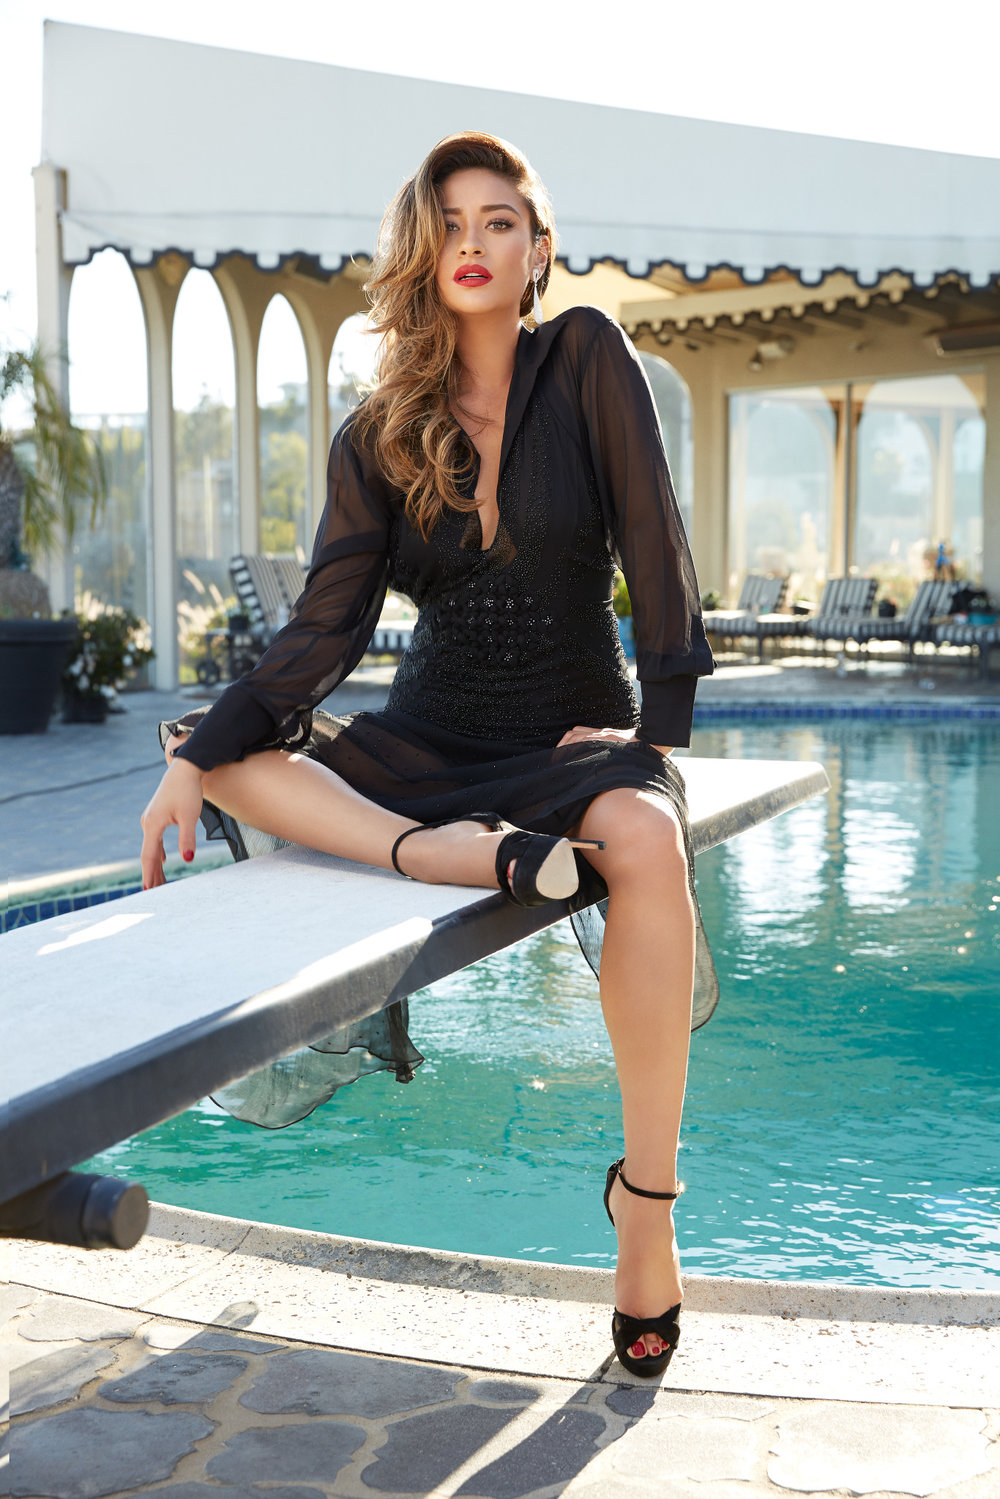 FB_SHAYMITCHELL_GLAM_0003.jpg